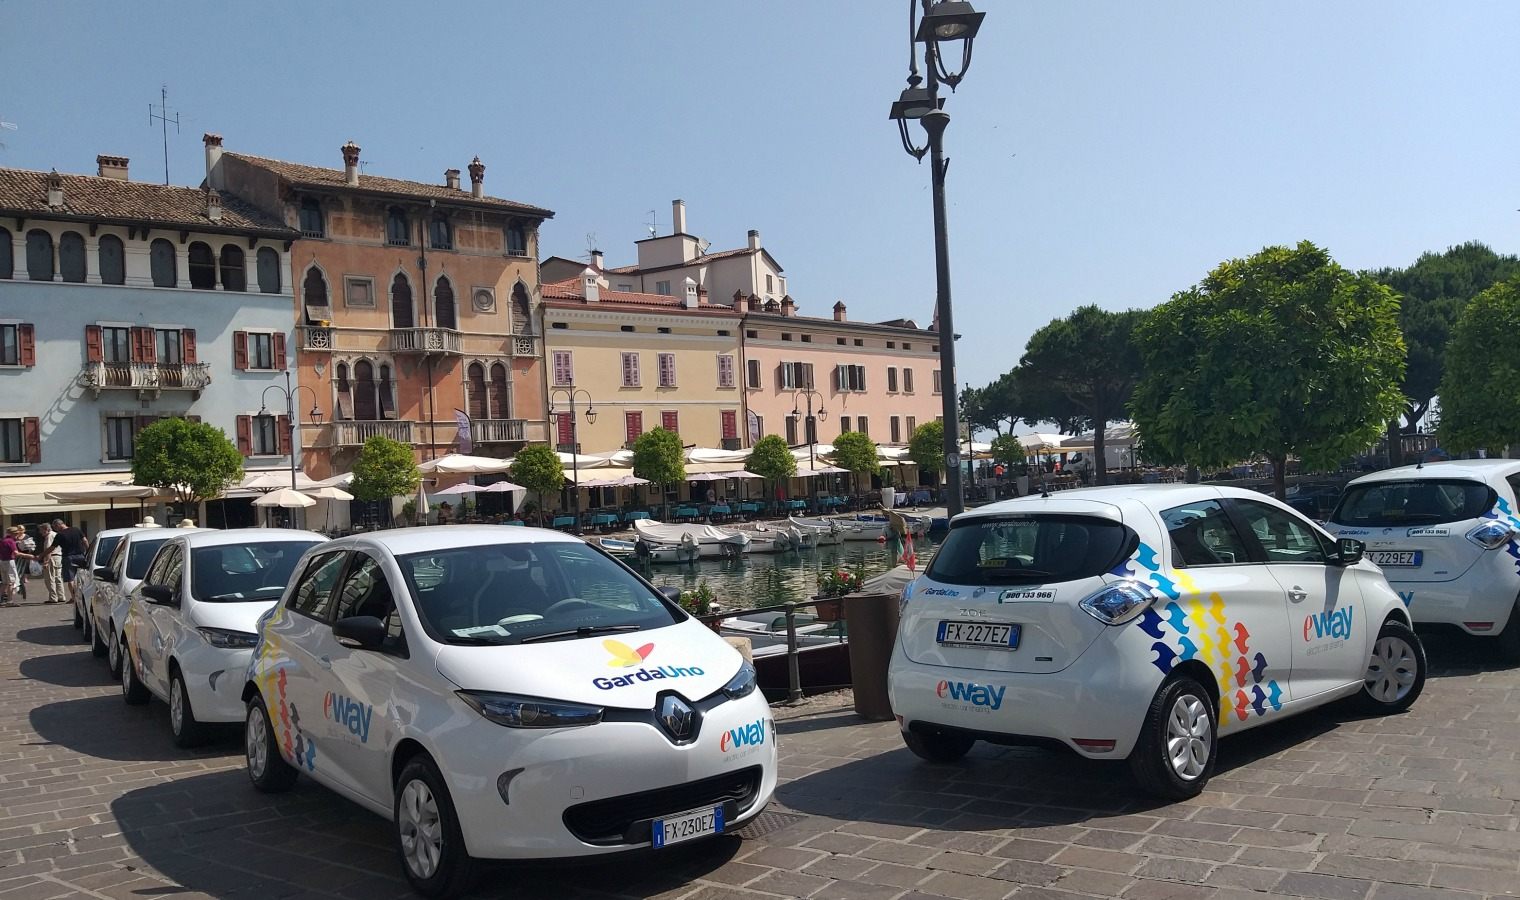 Car sharing elettrico e-way